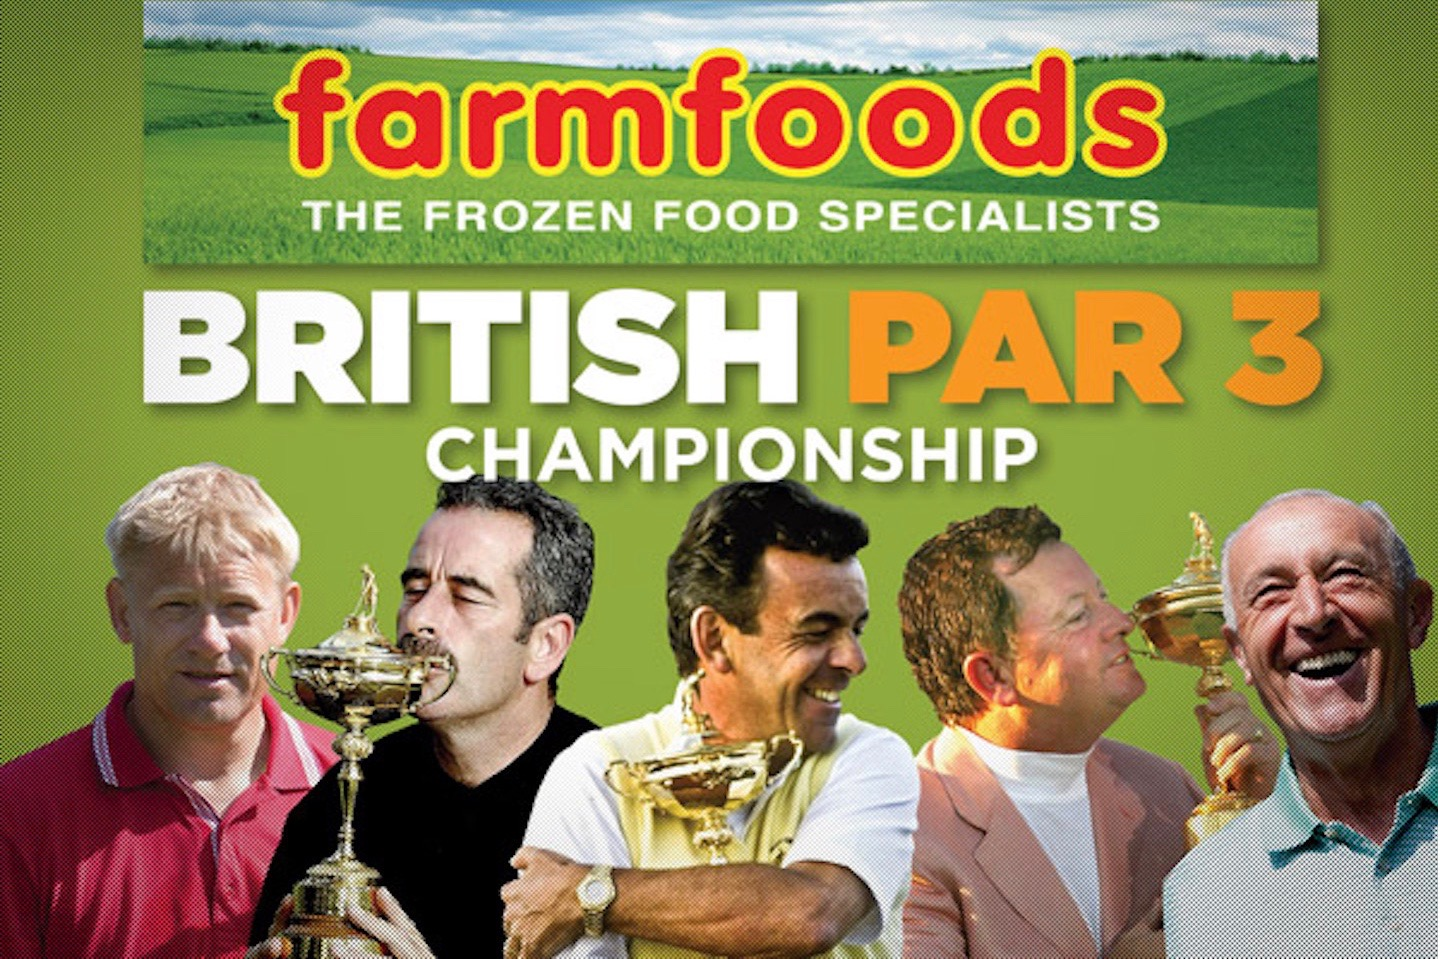 The Farm Foods British Par 3 Championship kicks off